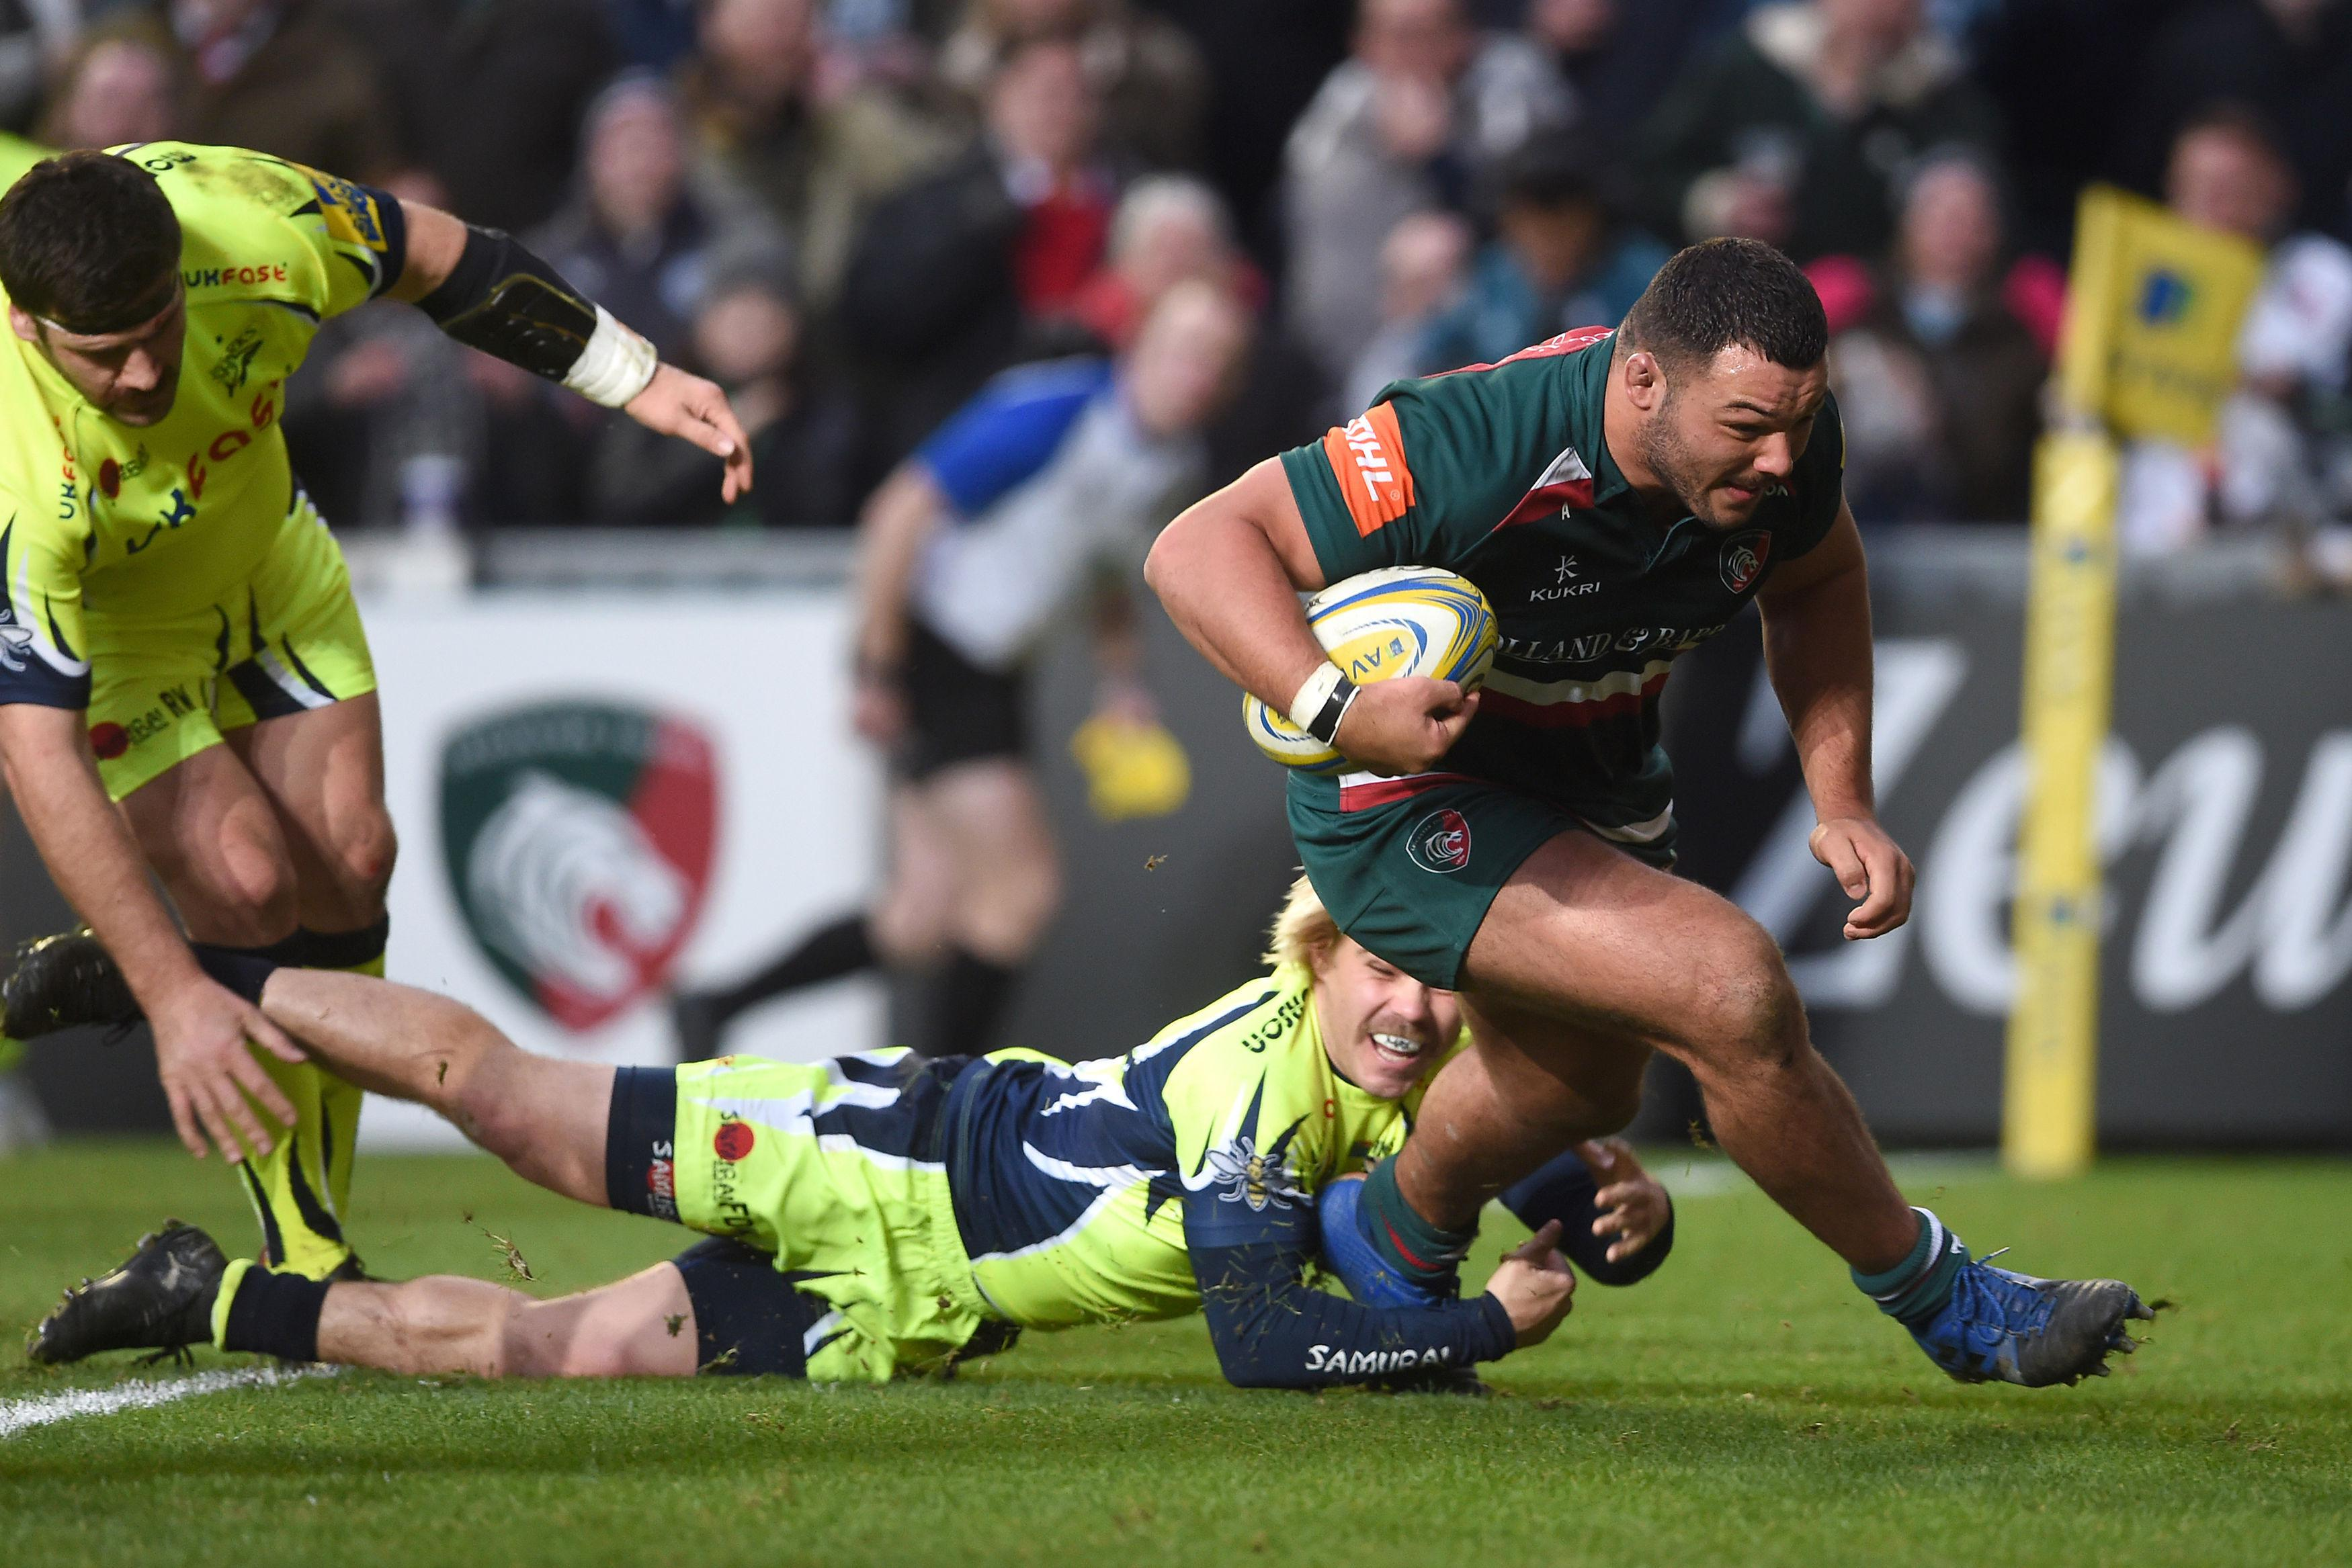 Leicester star Ellis Genge has a tough task to keep his place in the England side